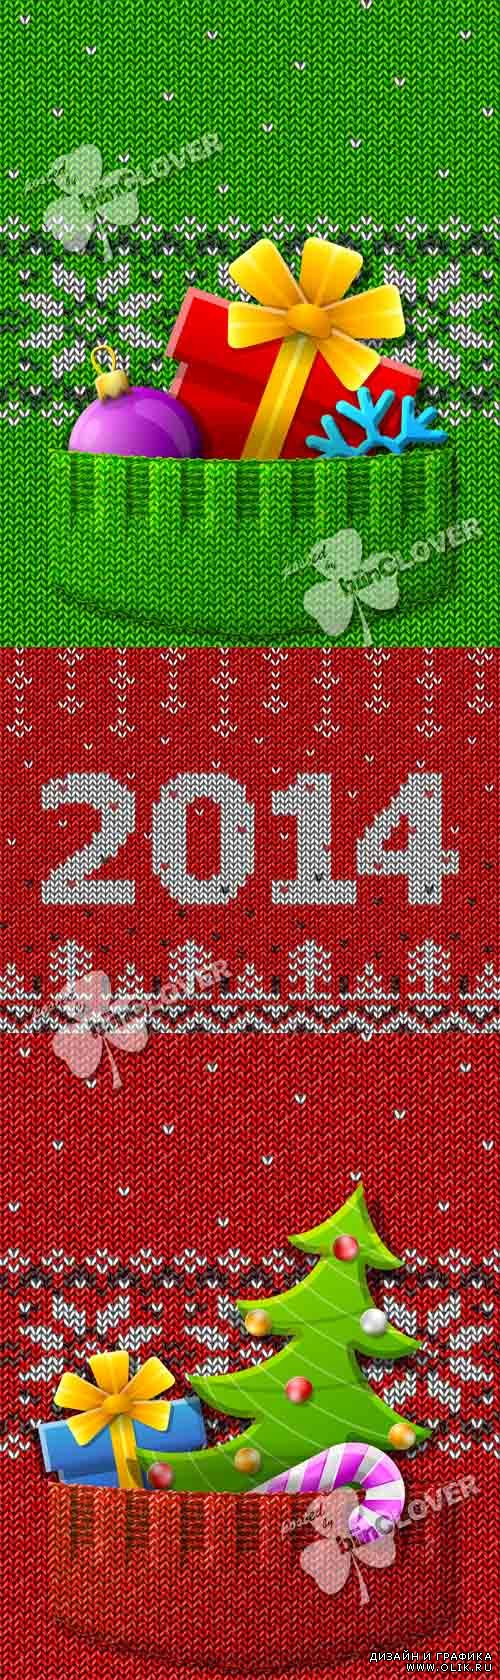 New Year 2014 knitted cards 0492